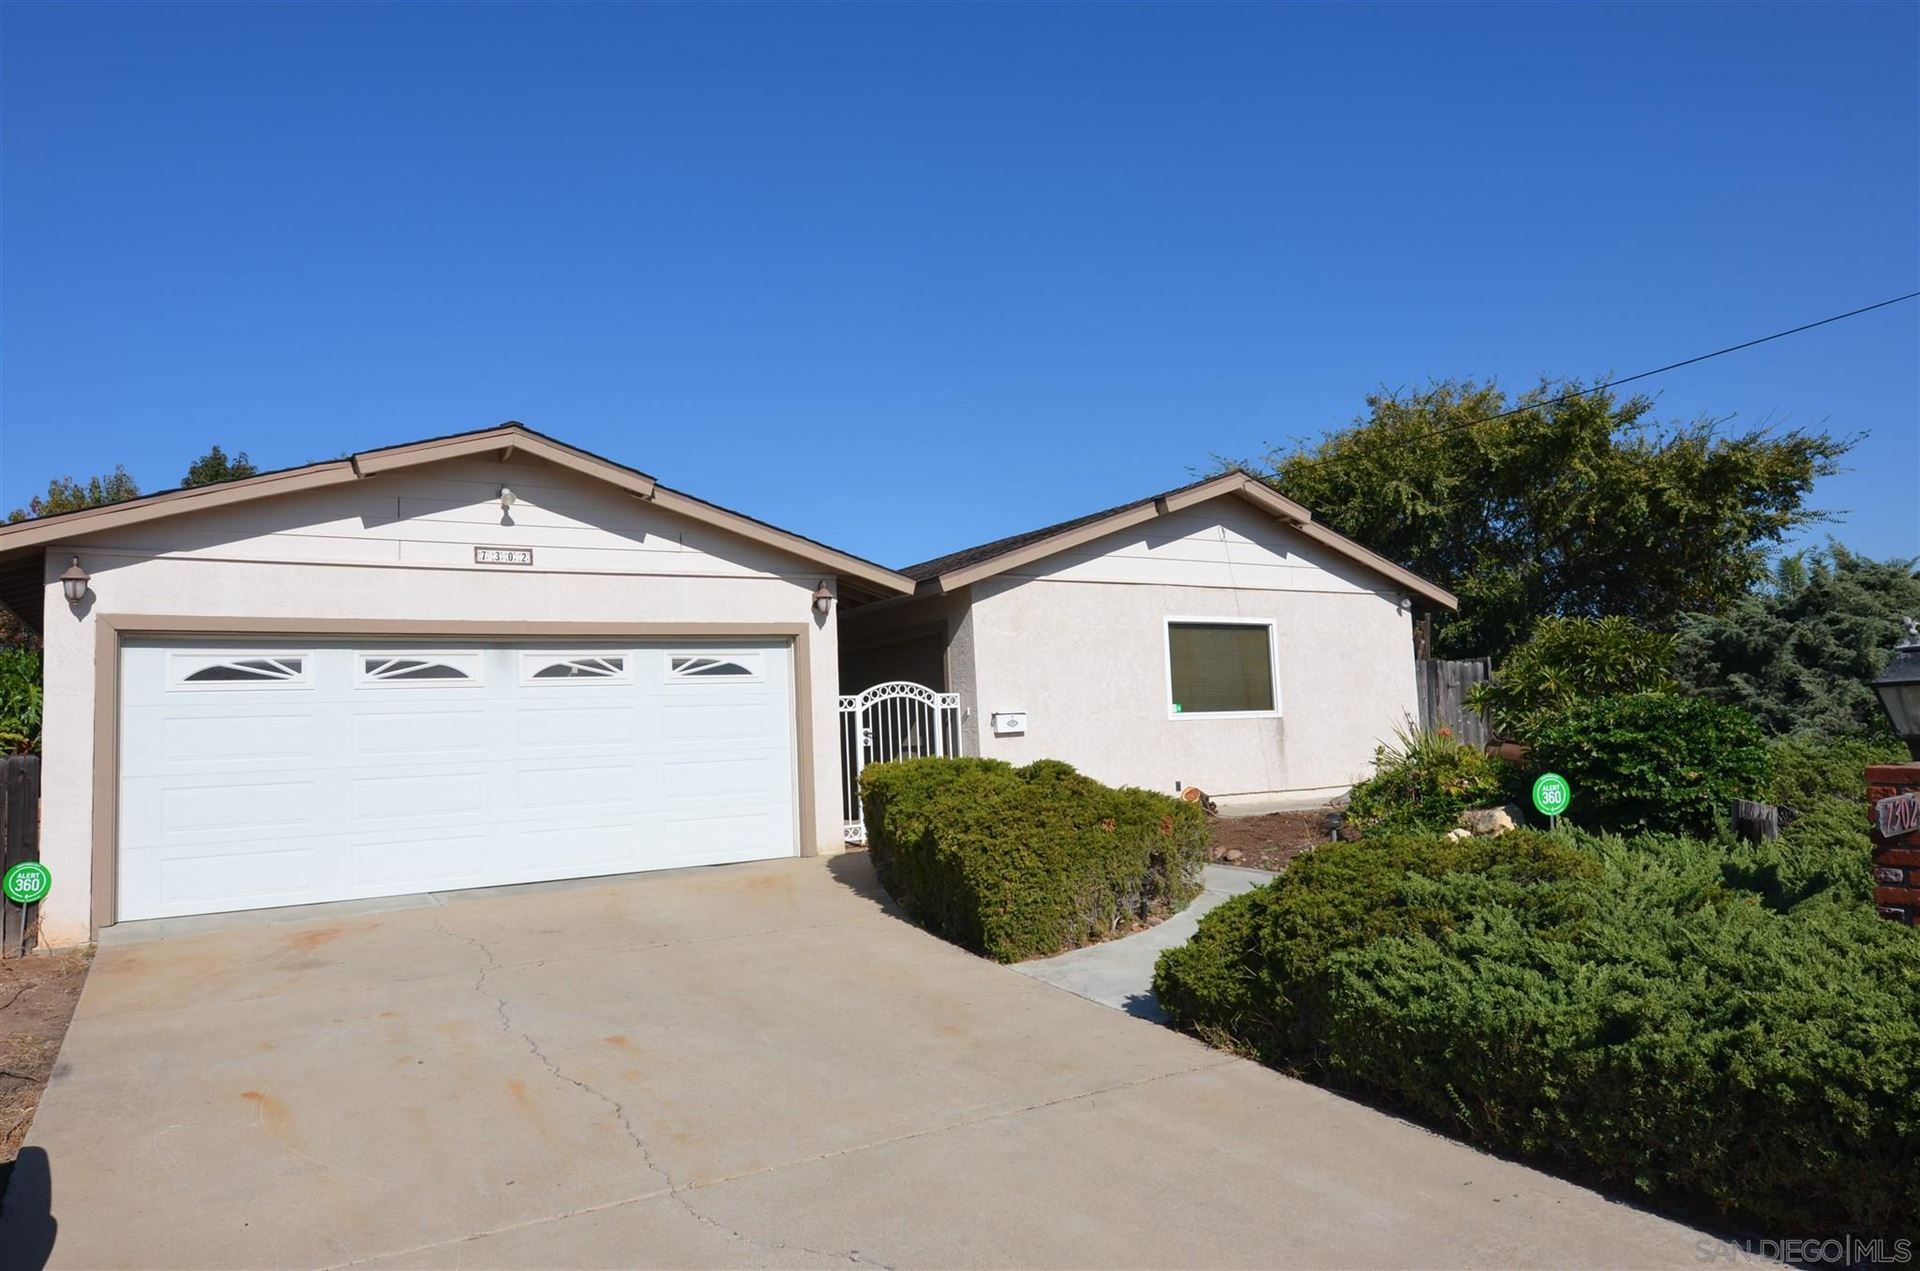 Photo of 7302 7302 San Miguel Avenue, Lemon Grove, CA 91945 (MLS # 200052169)